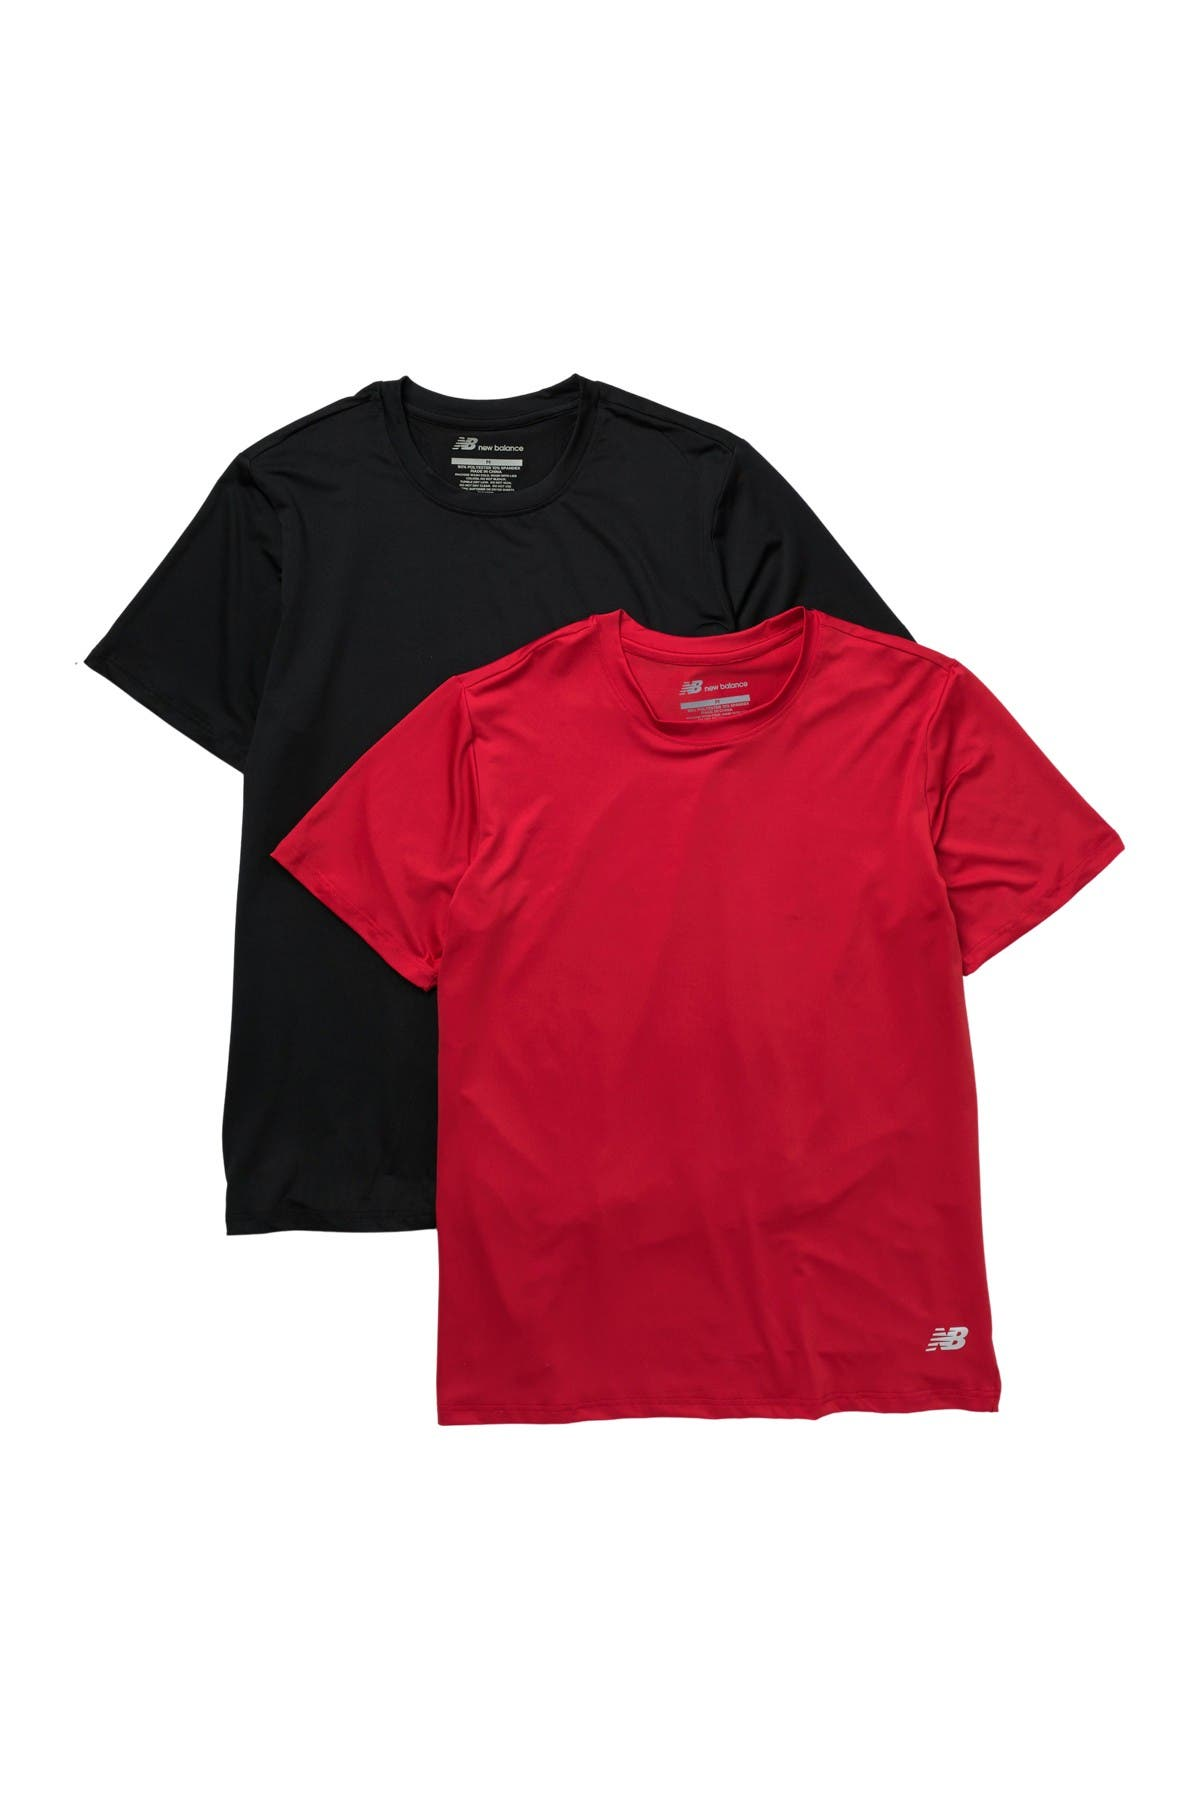 Image of New Balance Performance Crew Neck T-Shirt - Pack of 2